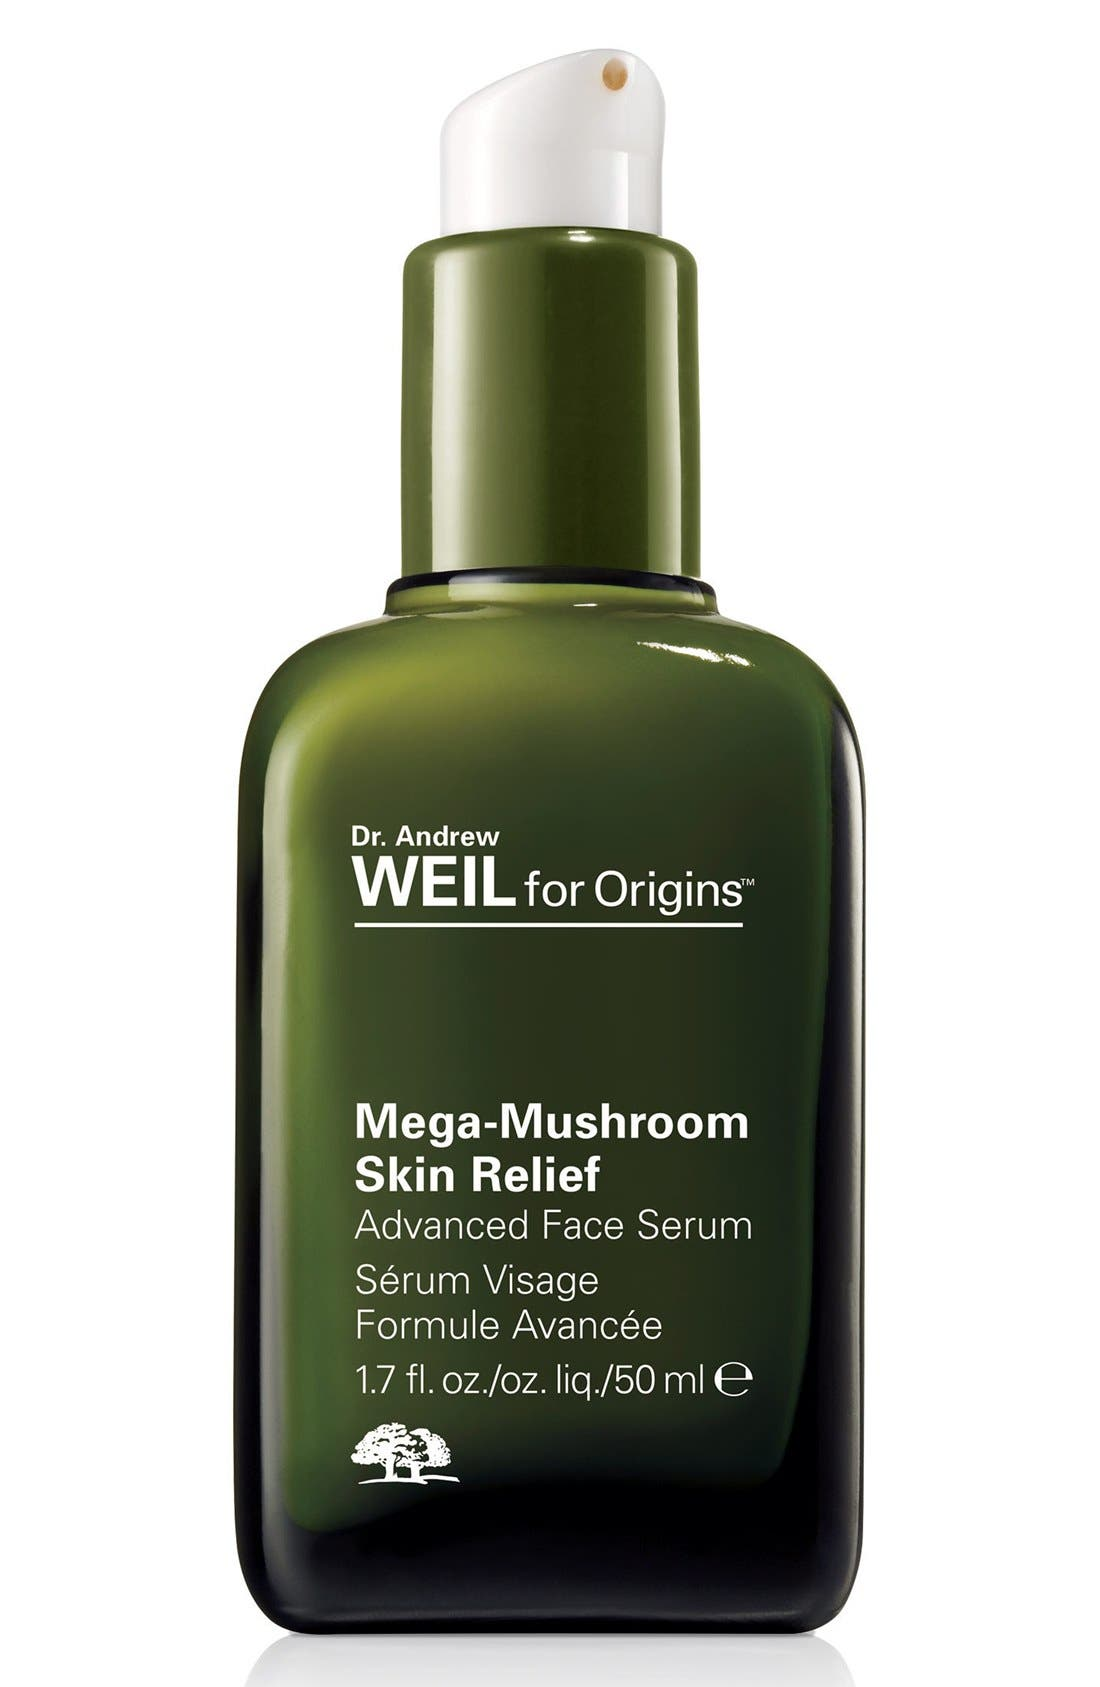 Origins Dr. Andrew Weil for Origins™ Mega-Mushroom Skin Relief Advanced Face Serum